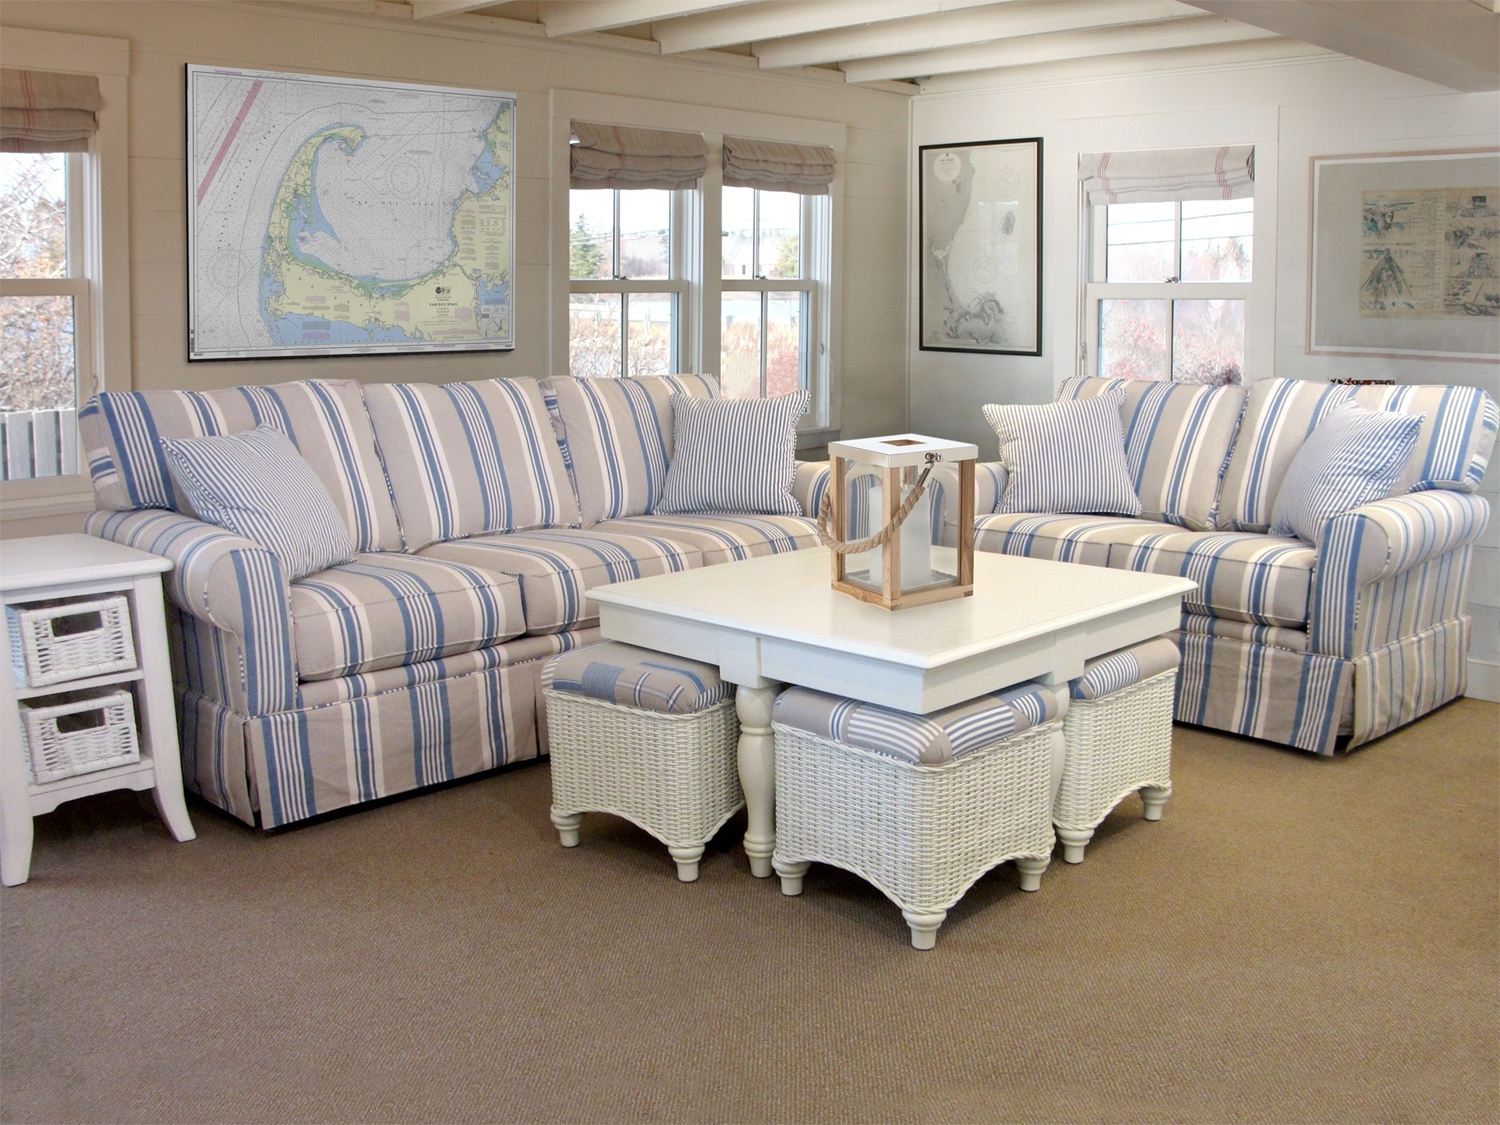 Striped Sofas And Chairs Throughout Trendy Awning Stripe Sofa (View 14 of 15)